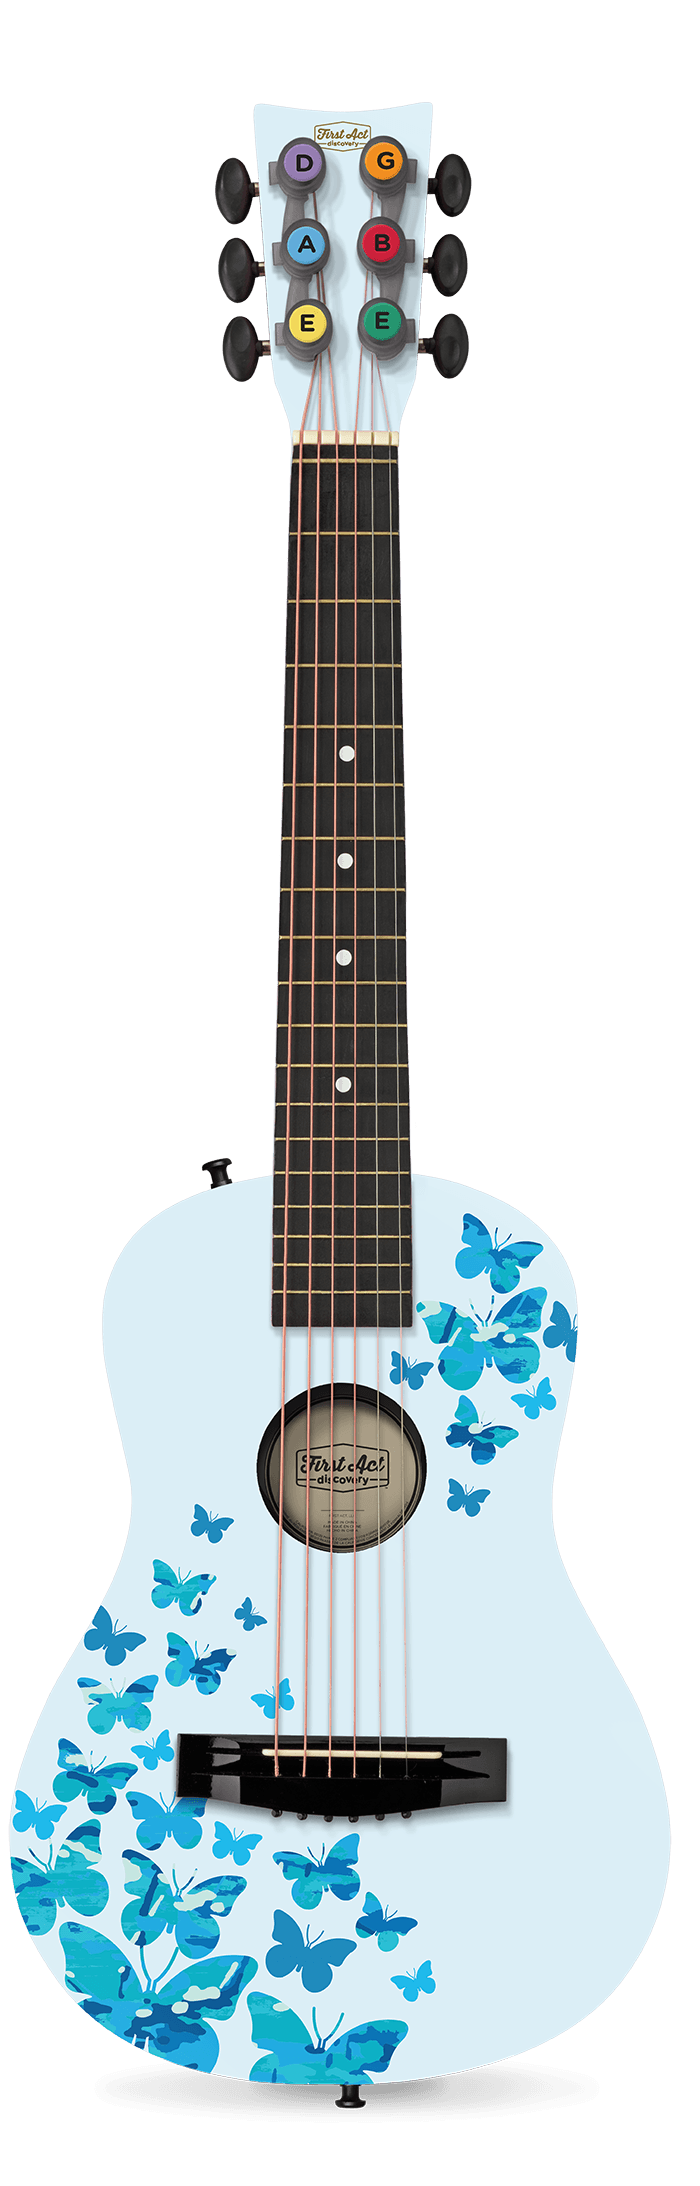 "Cheetah 30"" Acoustic Guitar 